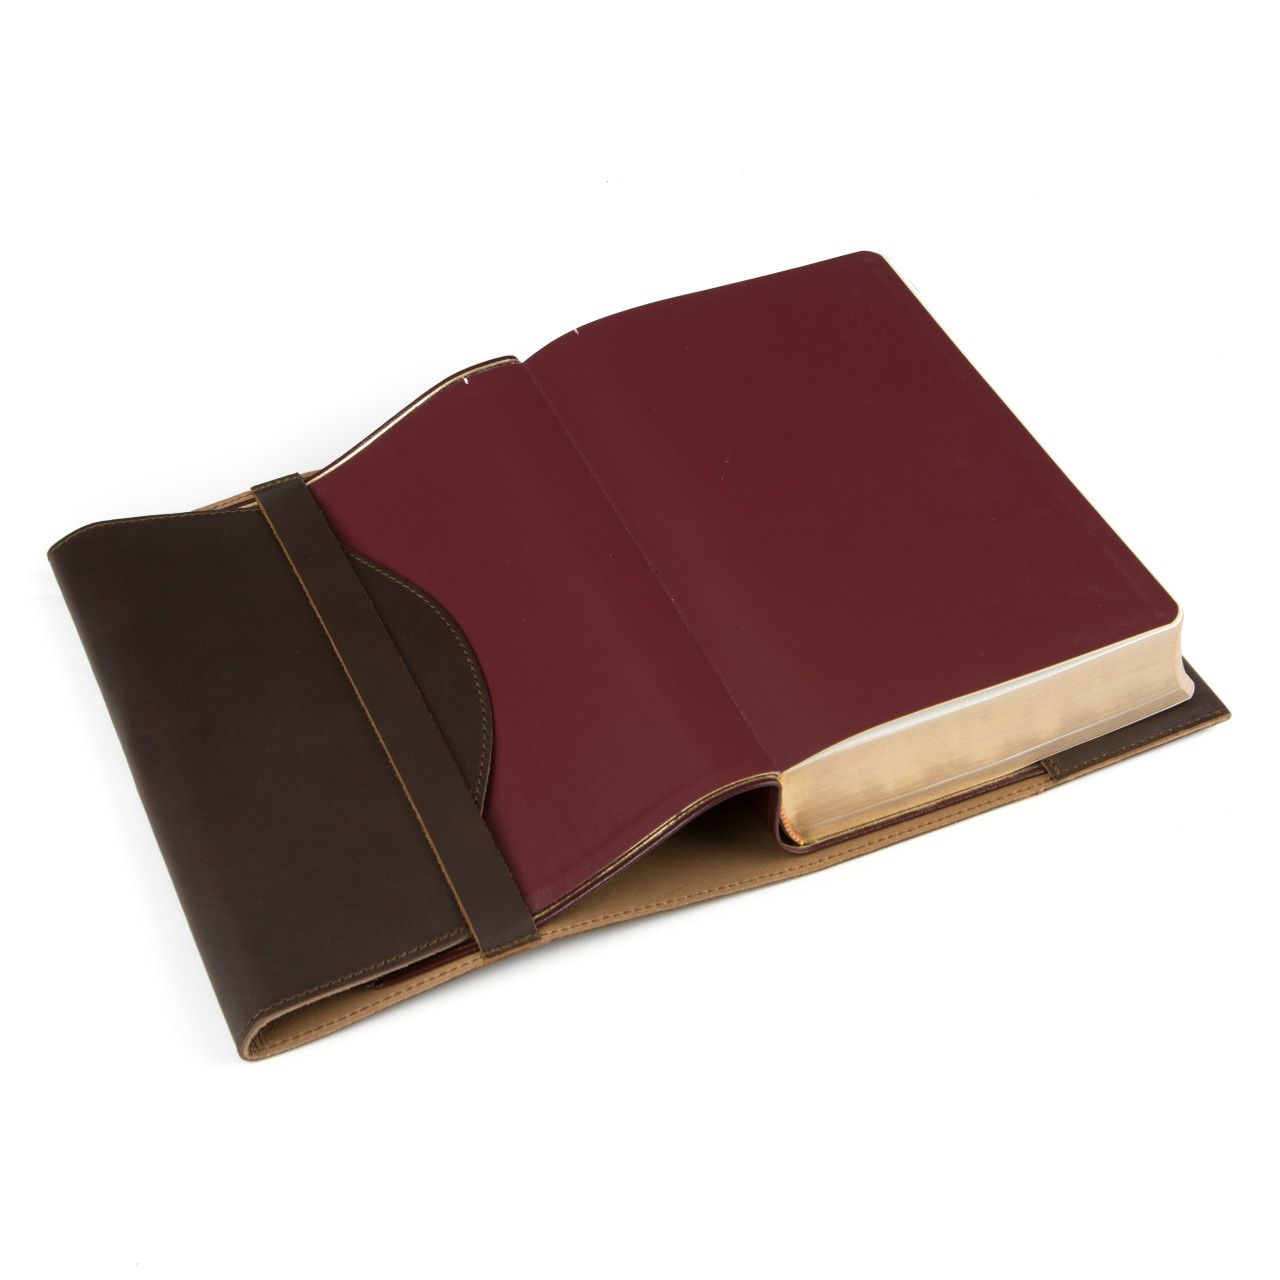 Bible in the leather book cover large in dark coffee brown leather